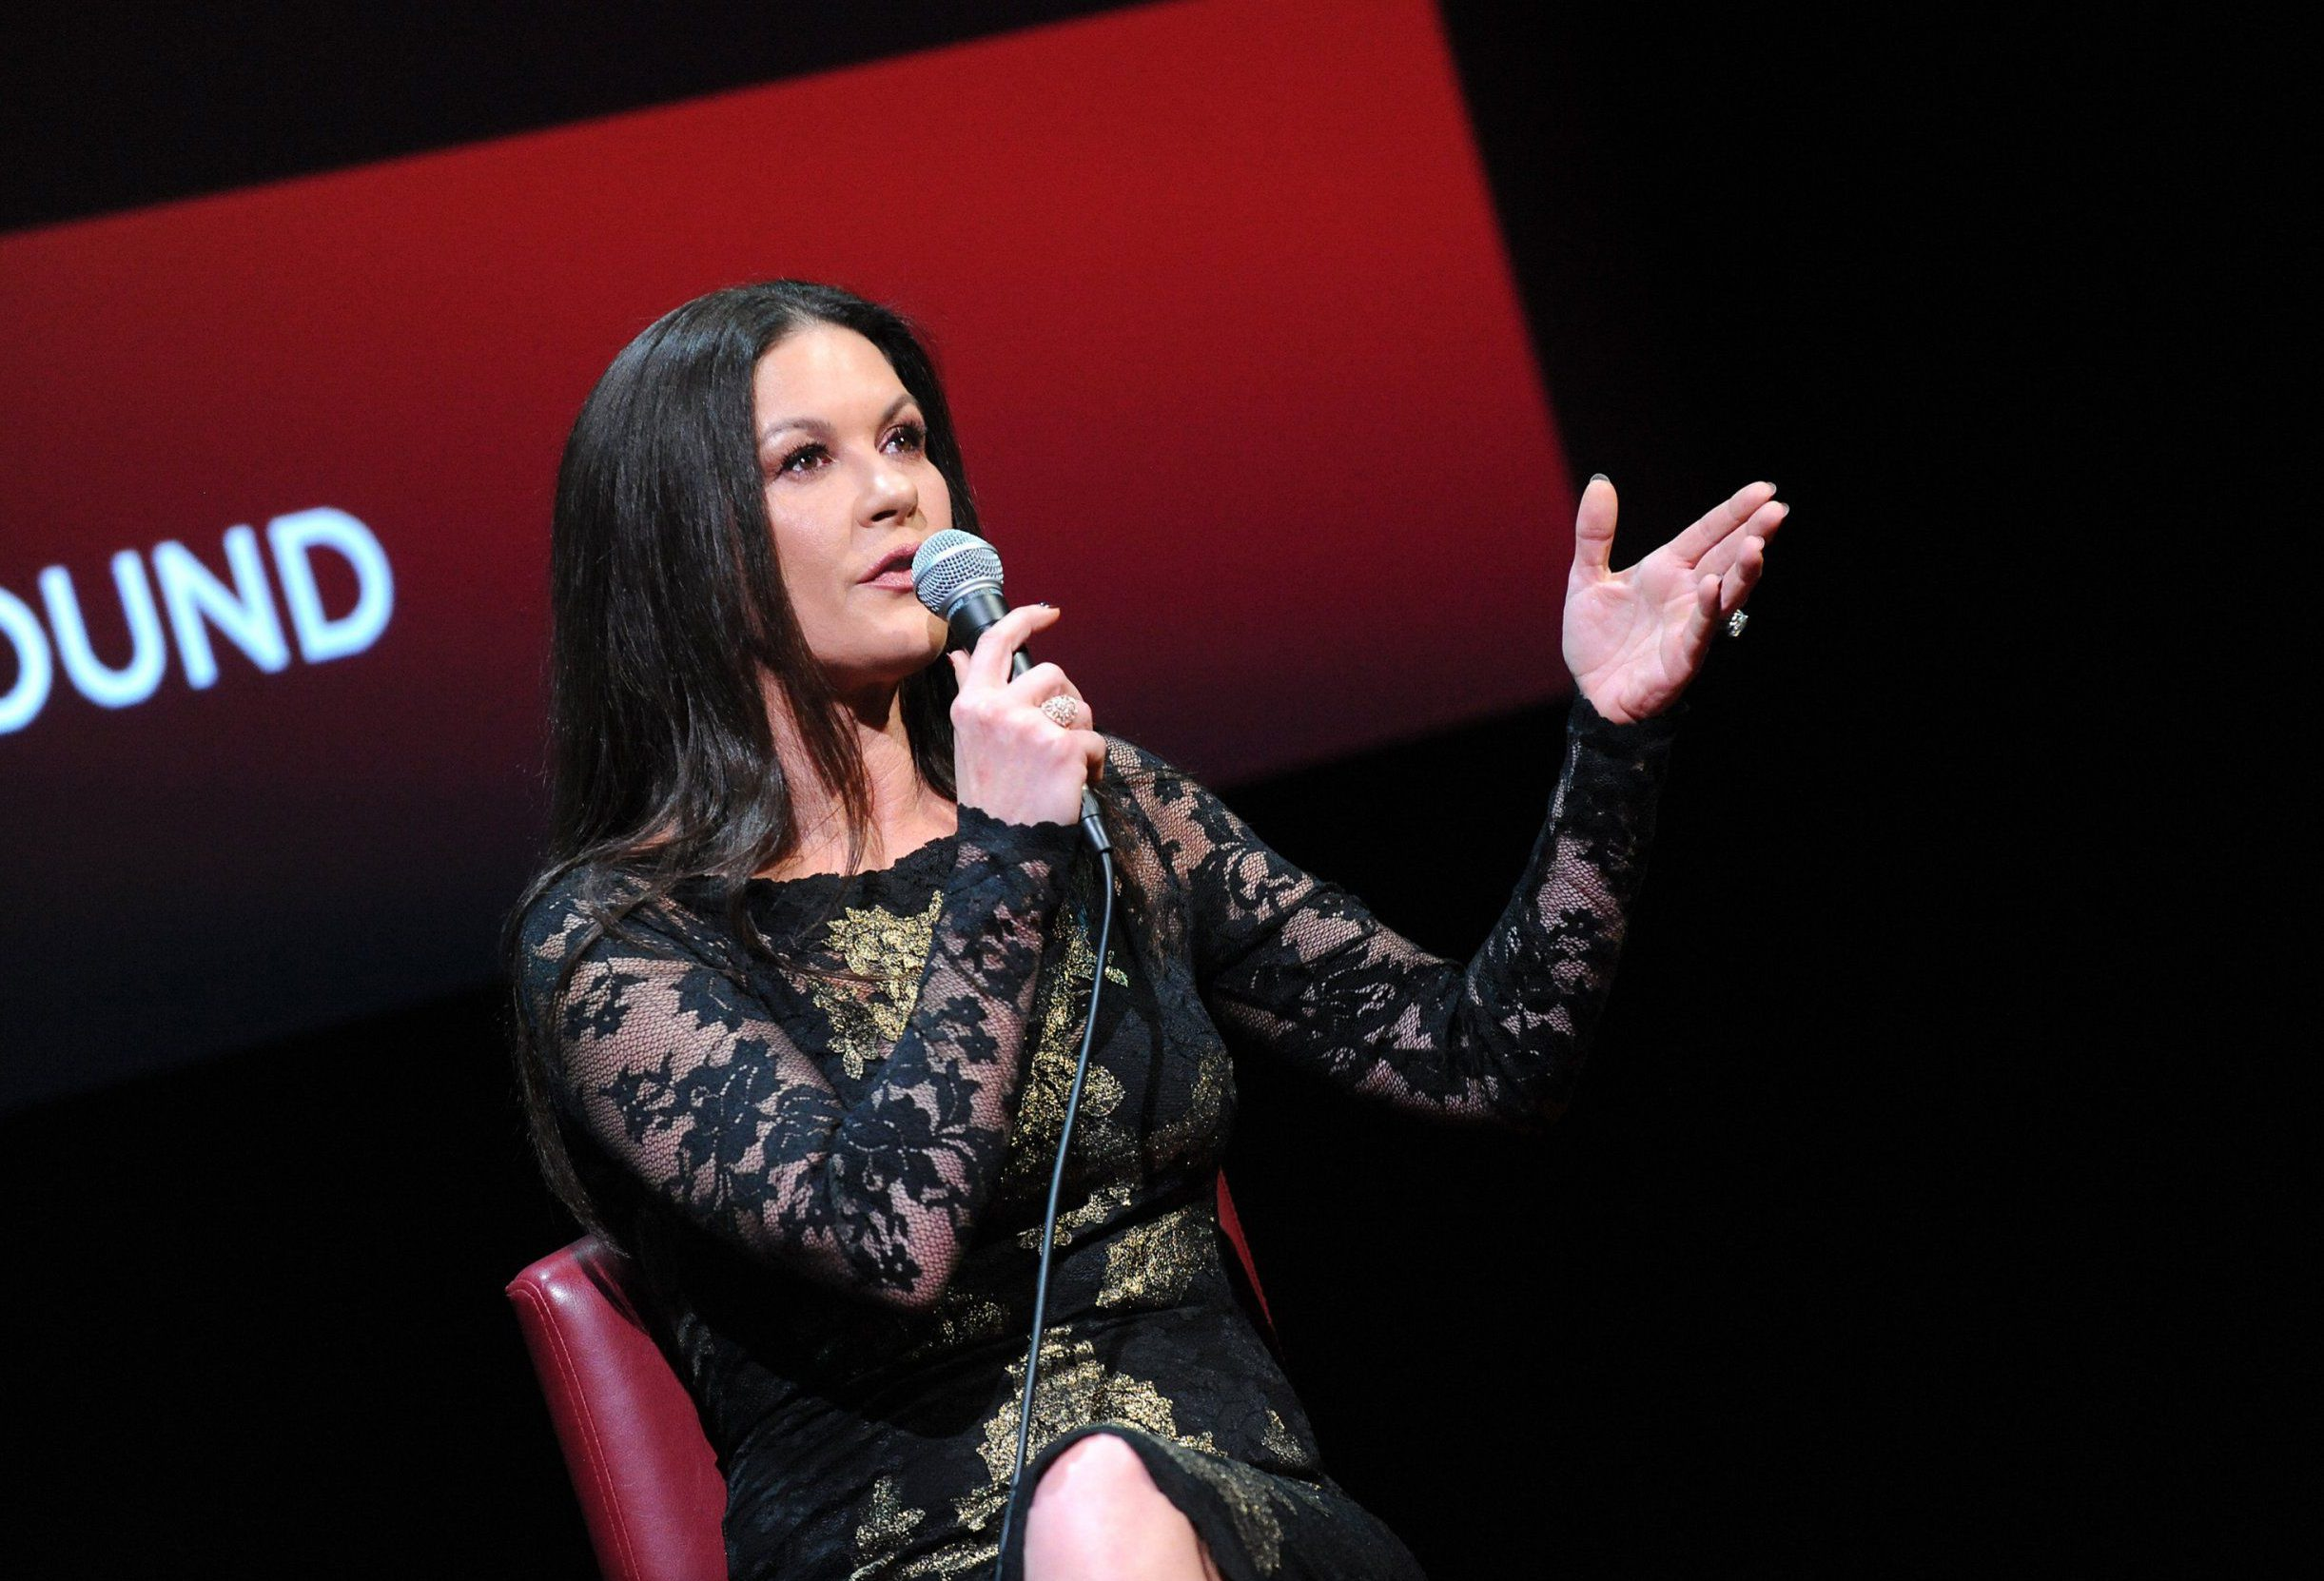 Catherine Zeta-Jones wants you to know she is 'sick of being humble' about her fame, riches and good looks